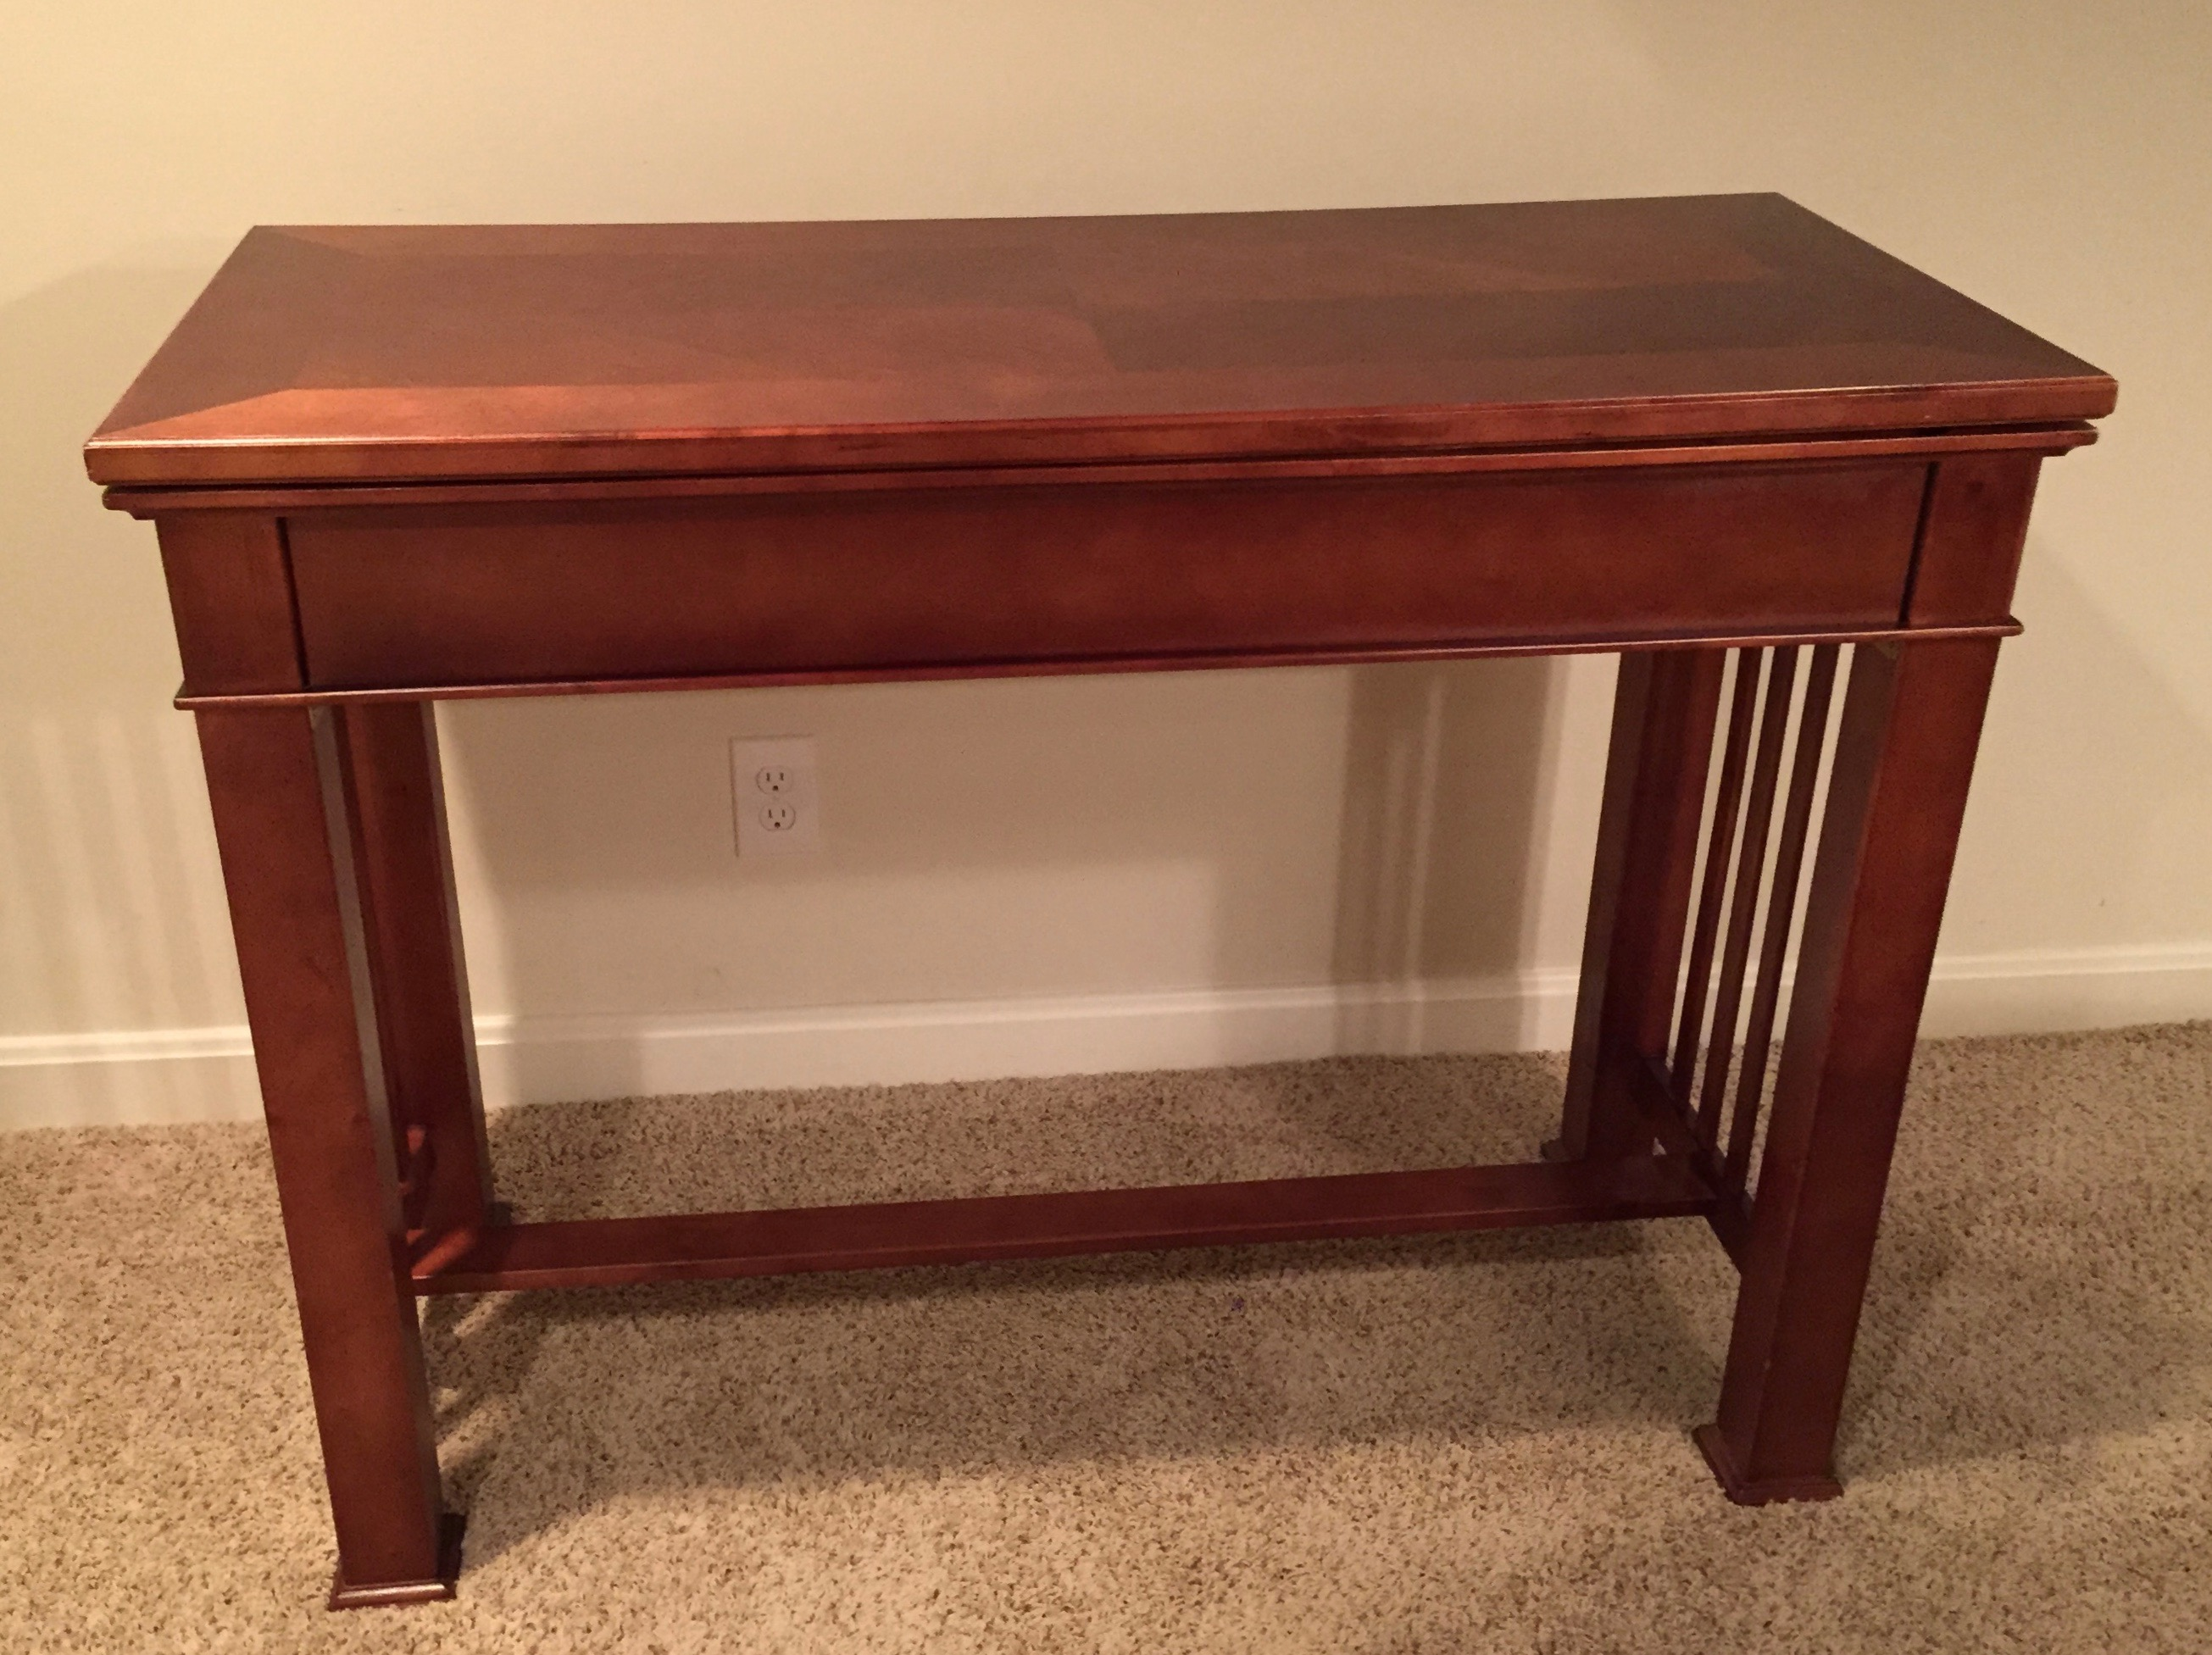 By Day This Tall Table/console Is Practical And Reliable For Most Table  Needs.